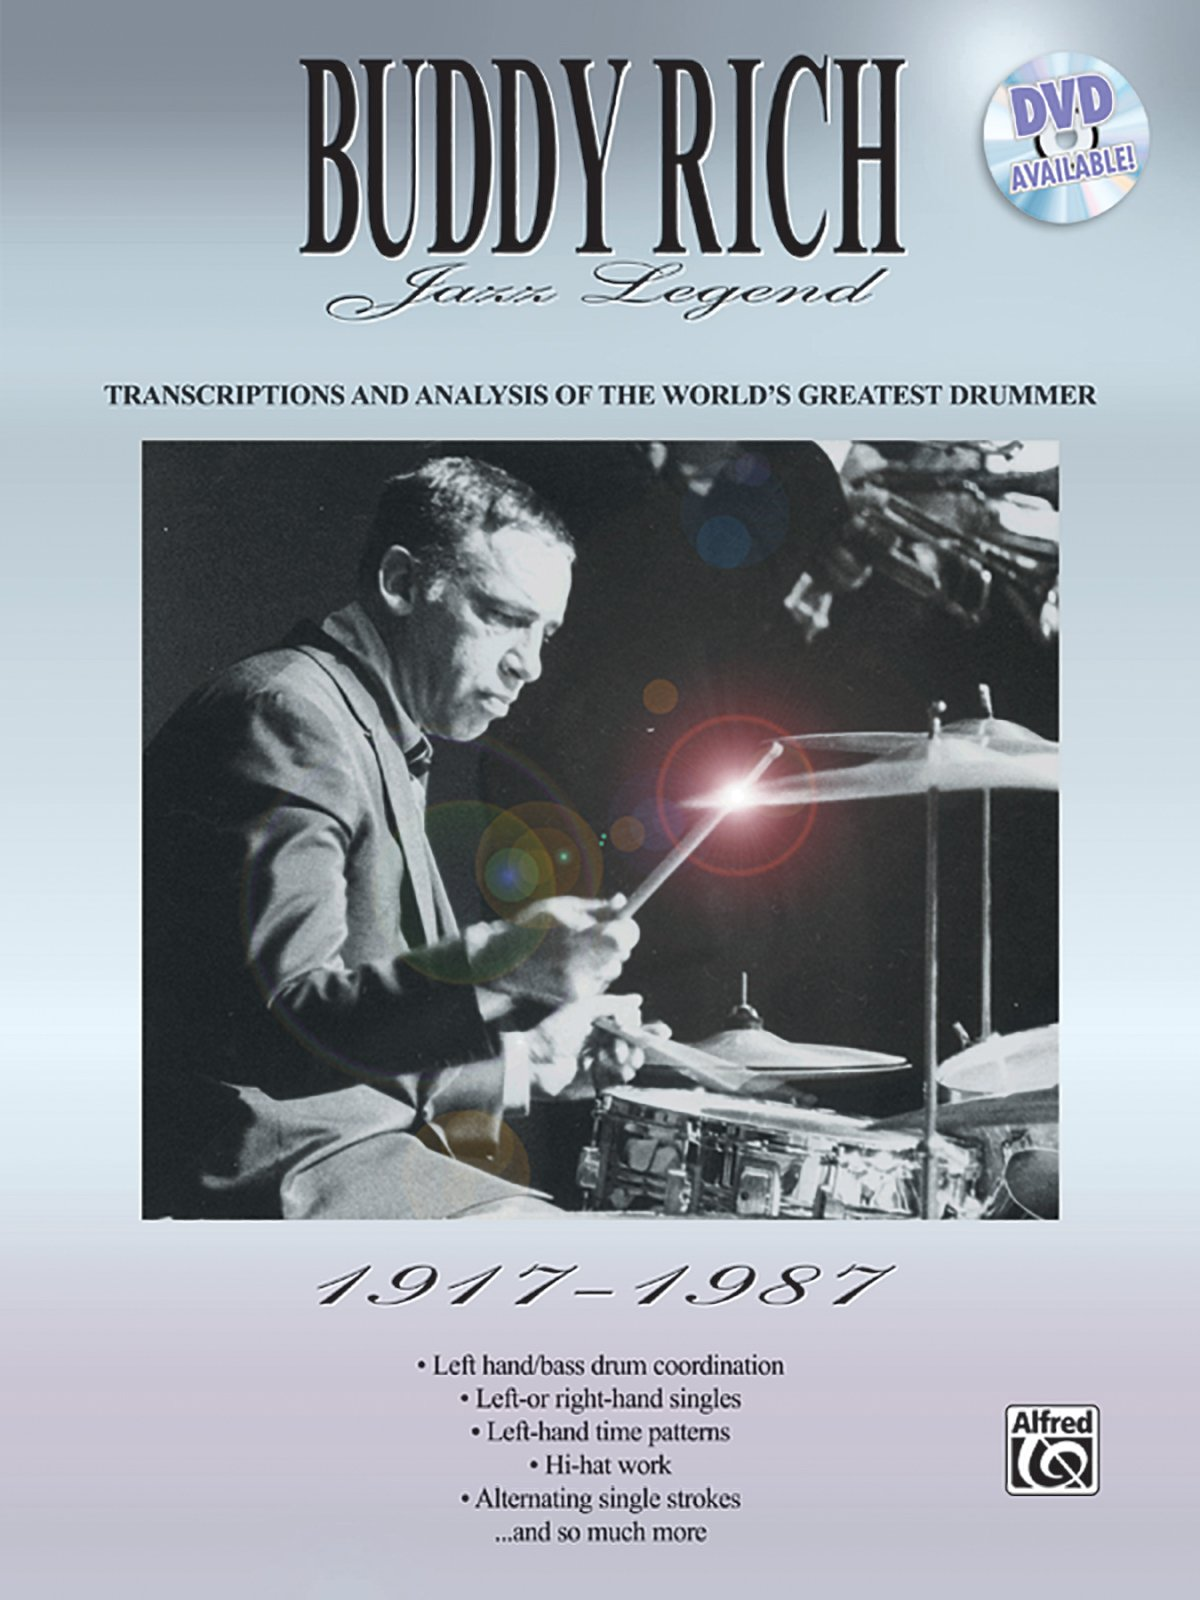 Download Buddy Rich -- Jazz Legend (1917-1987): Transcriptions and Analysis of the World's Greatest Drummer PDF